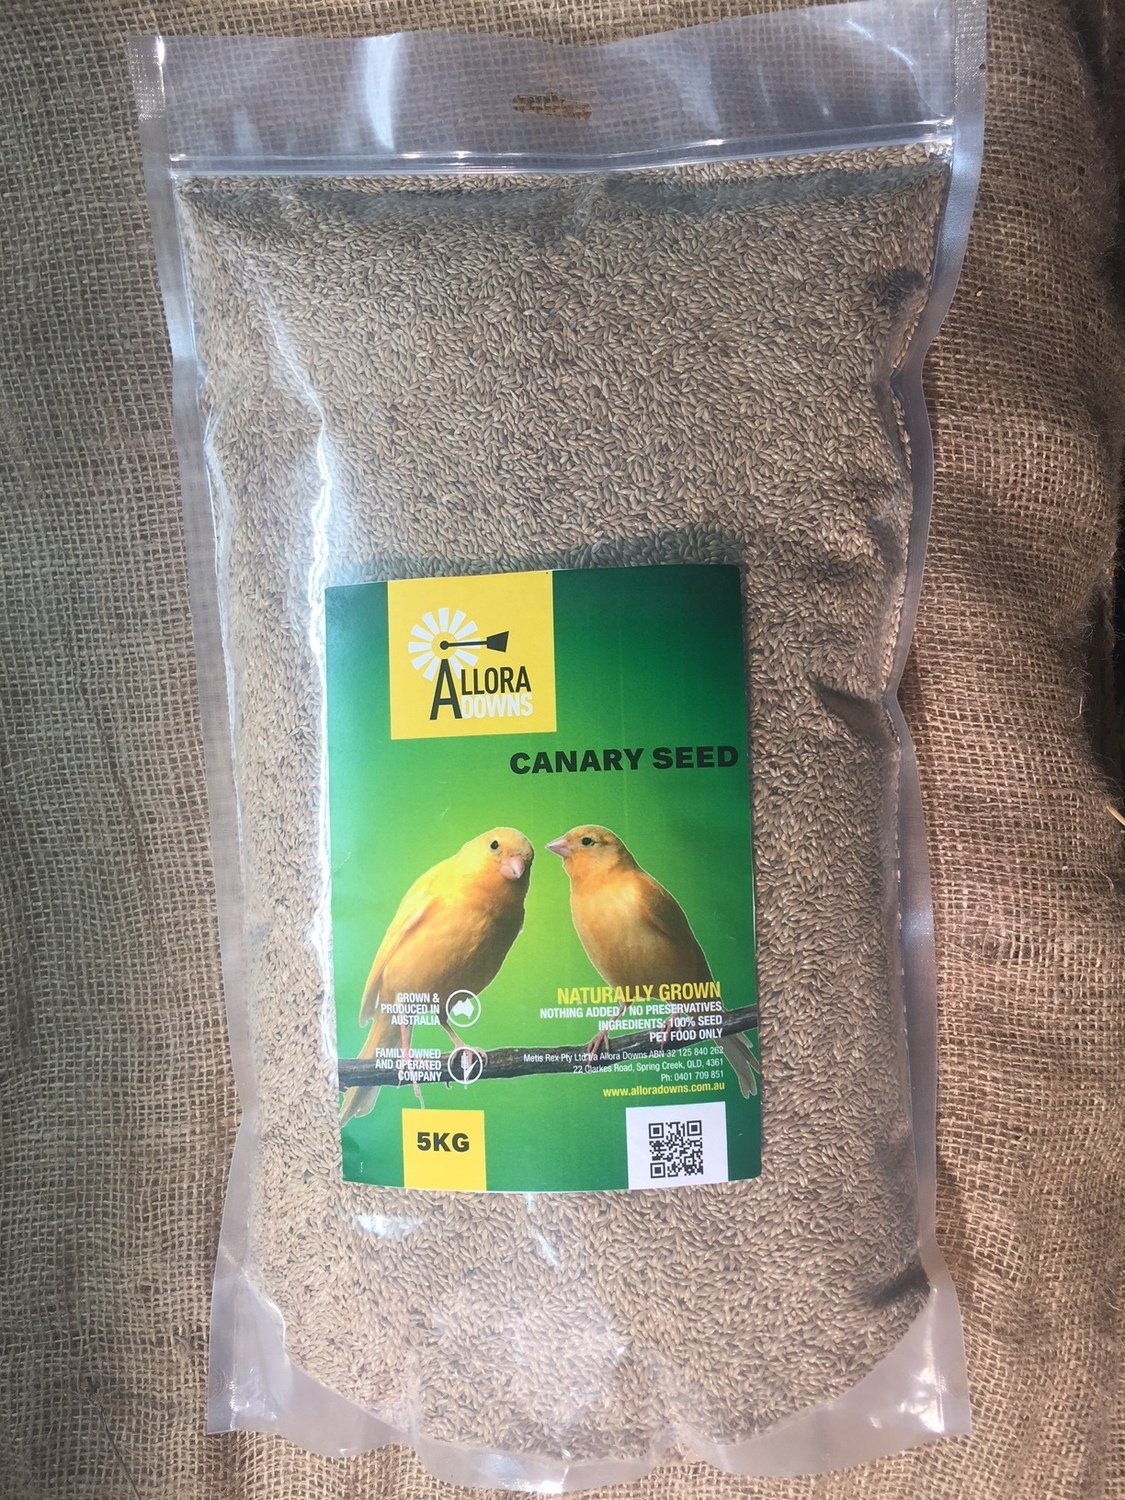 Allora Downs Canary seed 5kg